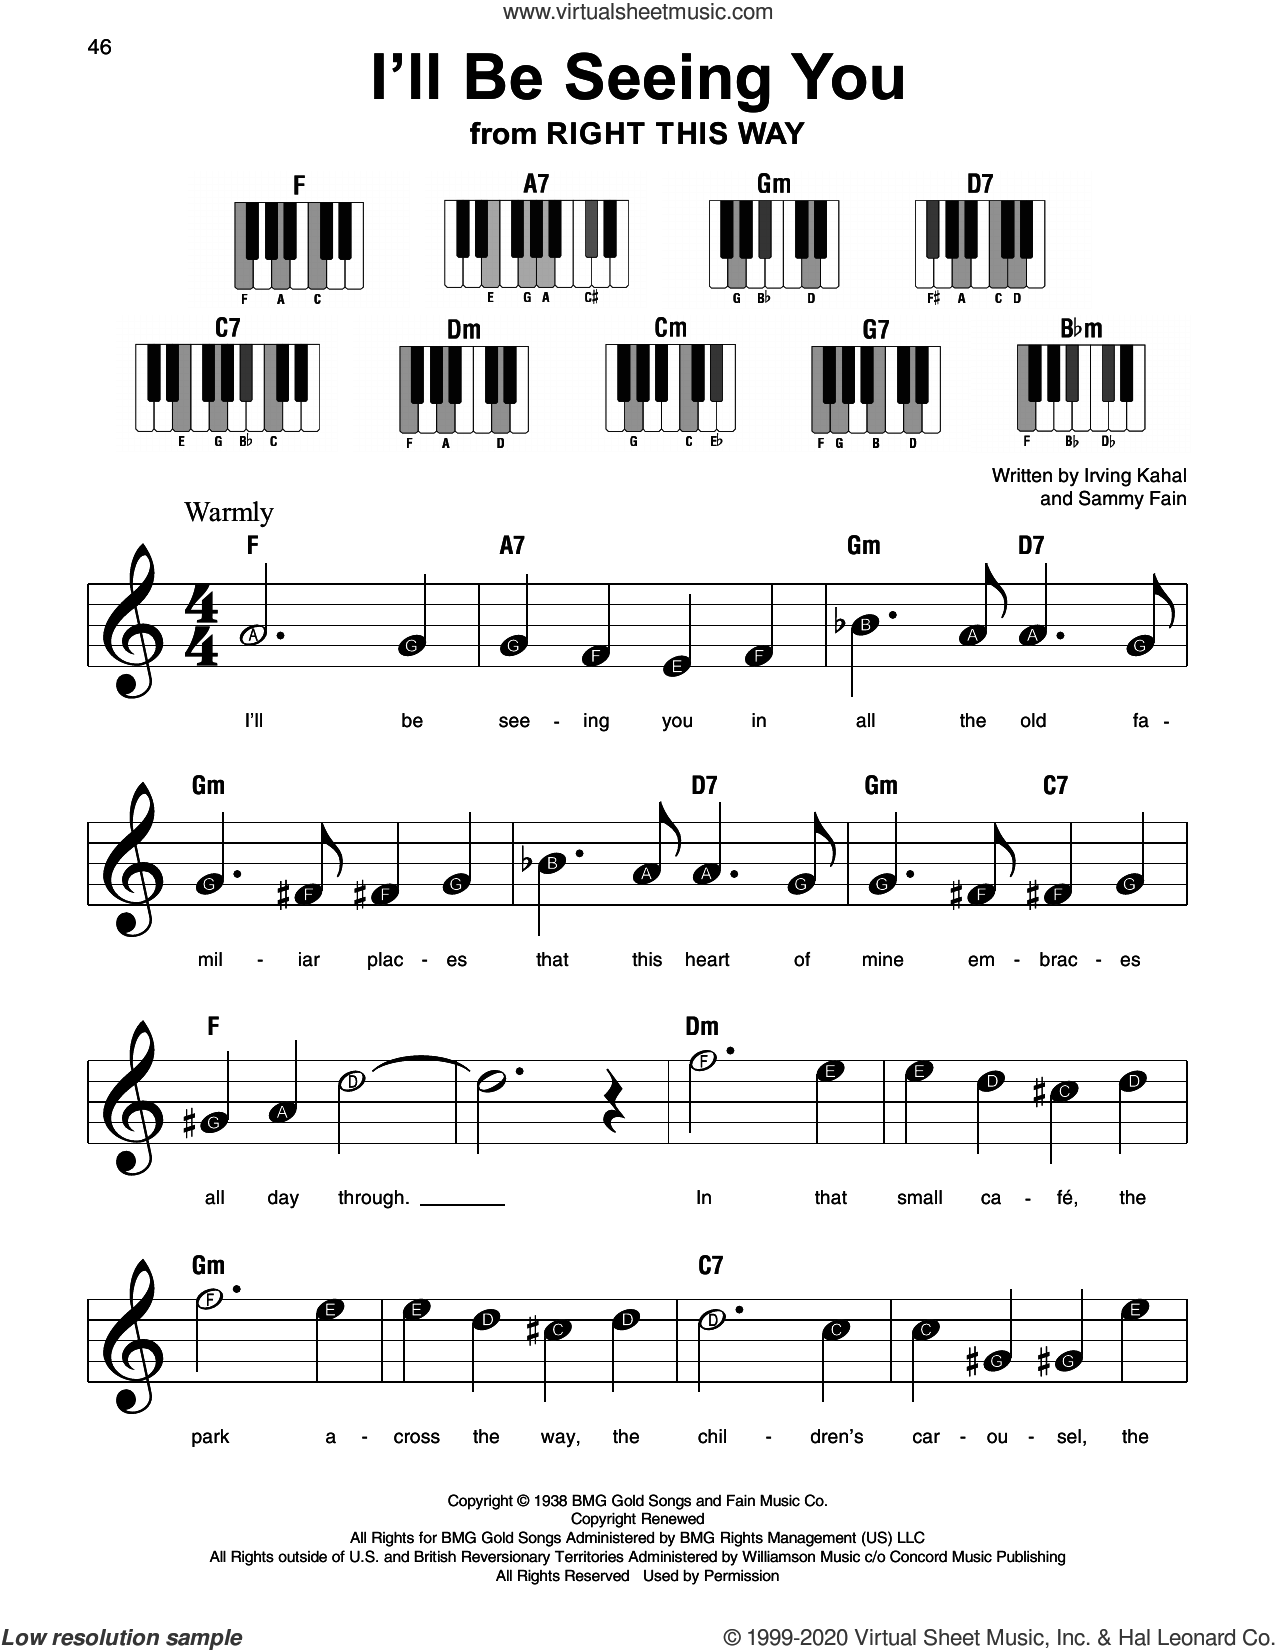 I'll Be Seeing You (from Right This Way) sheet music for piano solo by Sammy Fain, Irving Kahal and Irving Kahal & Sammy Fain, beginner skill level